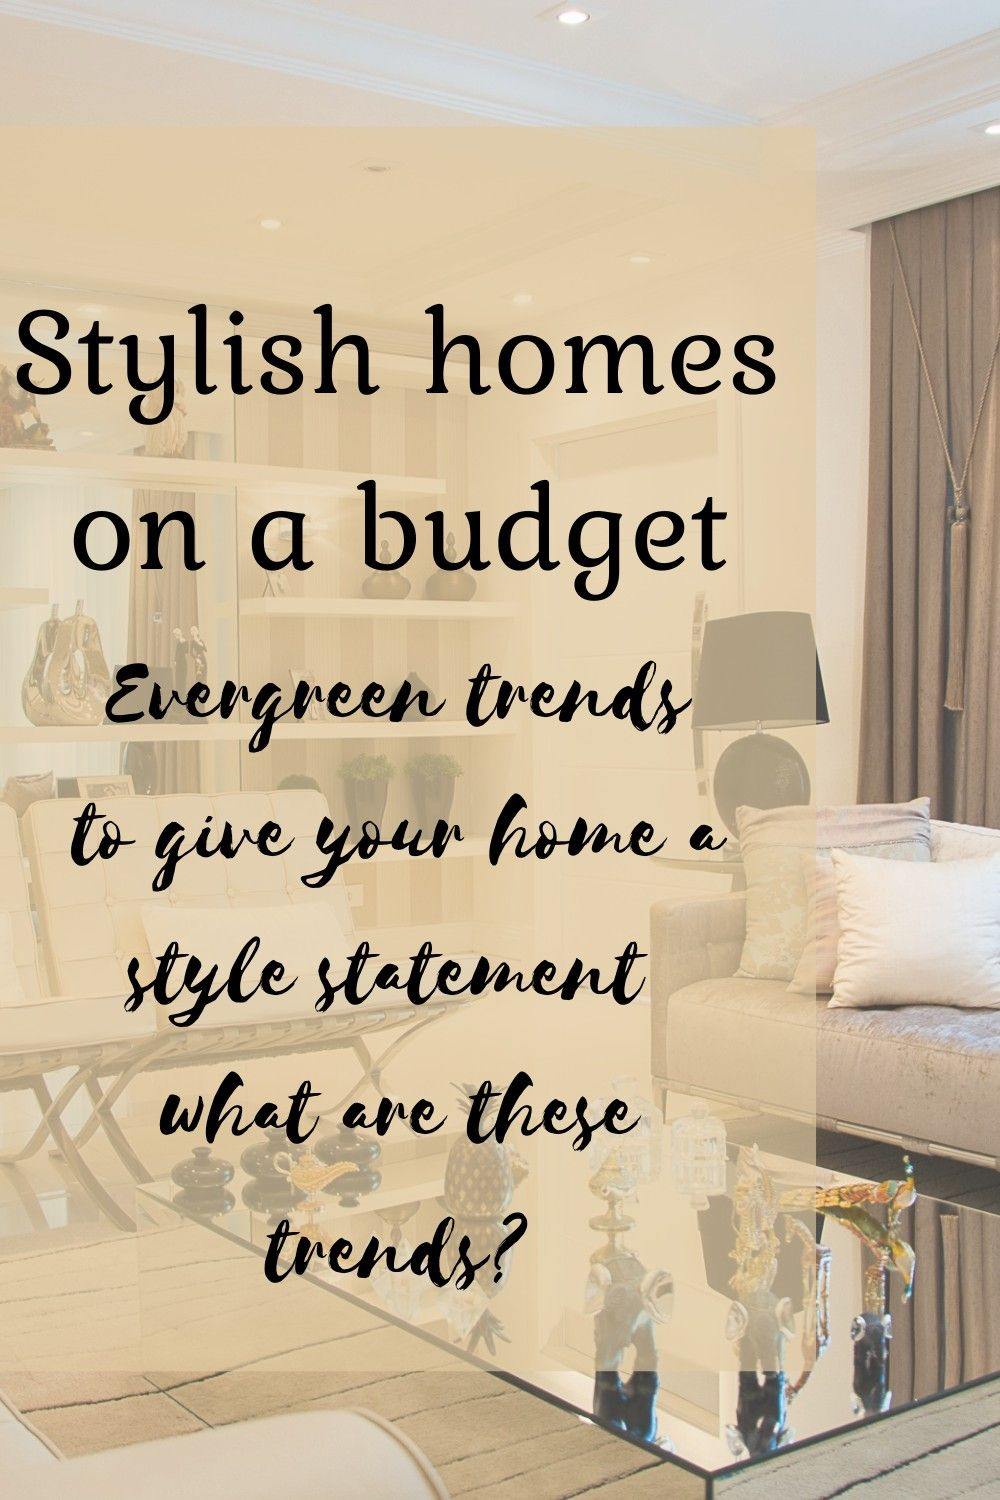 5 Evergreen Trends That Makes Your Home An Epitome Of Style In Seconds In 2020 House Is A Feeling Home Decor Tips Home Look